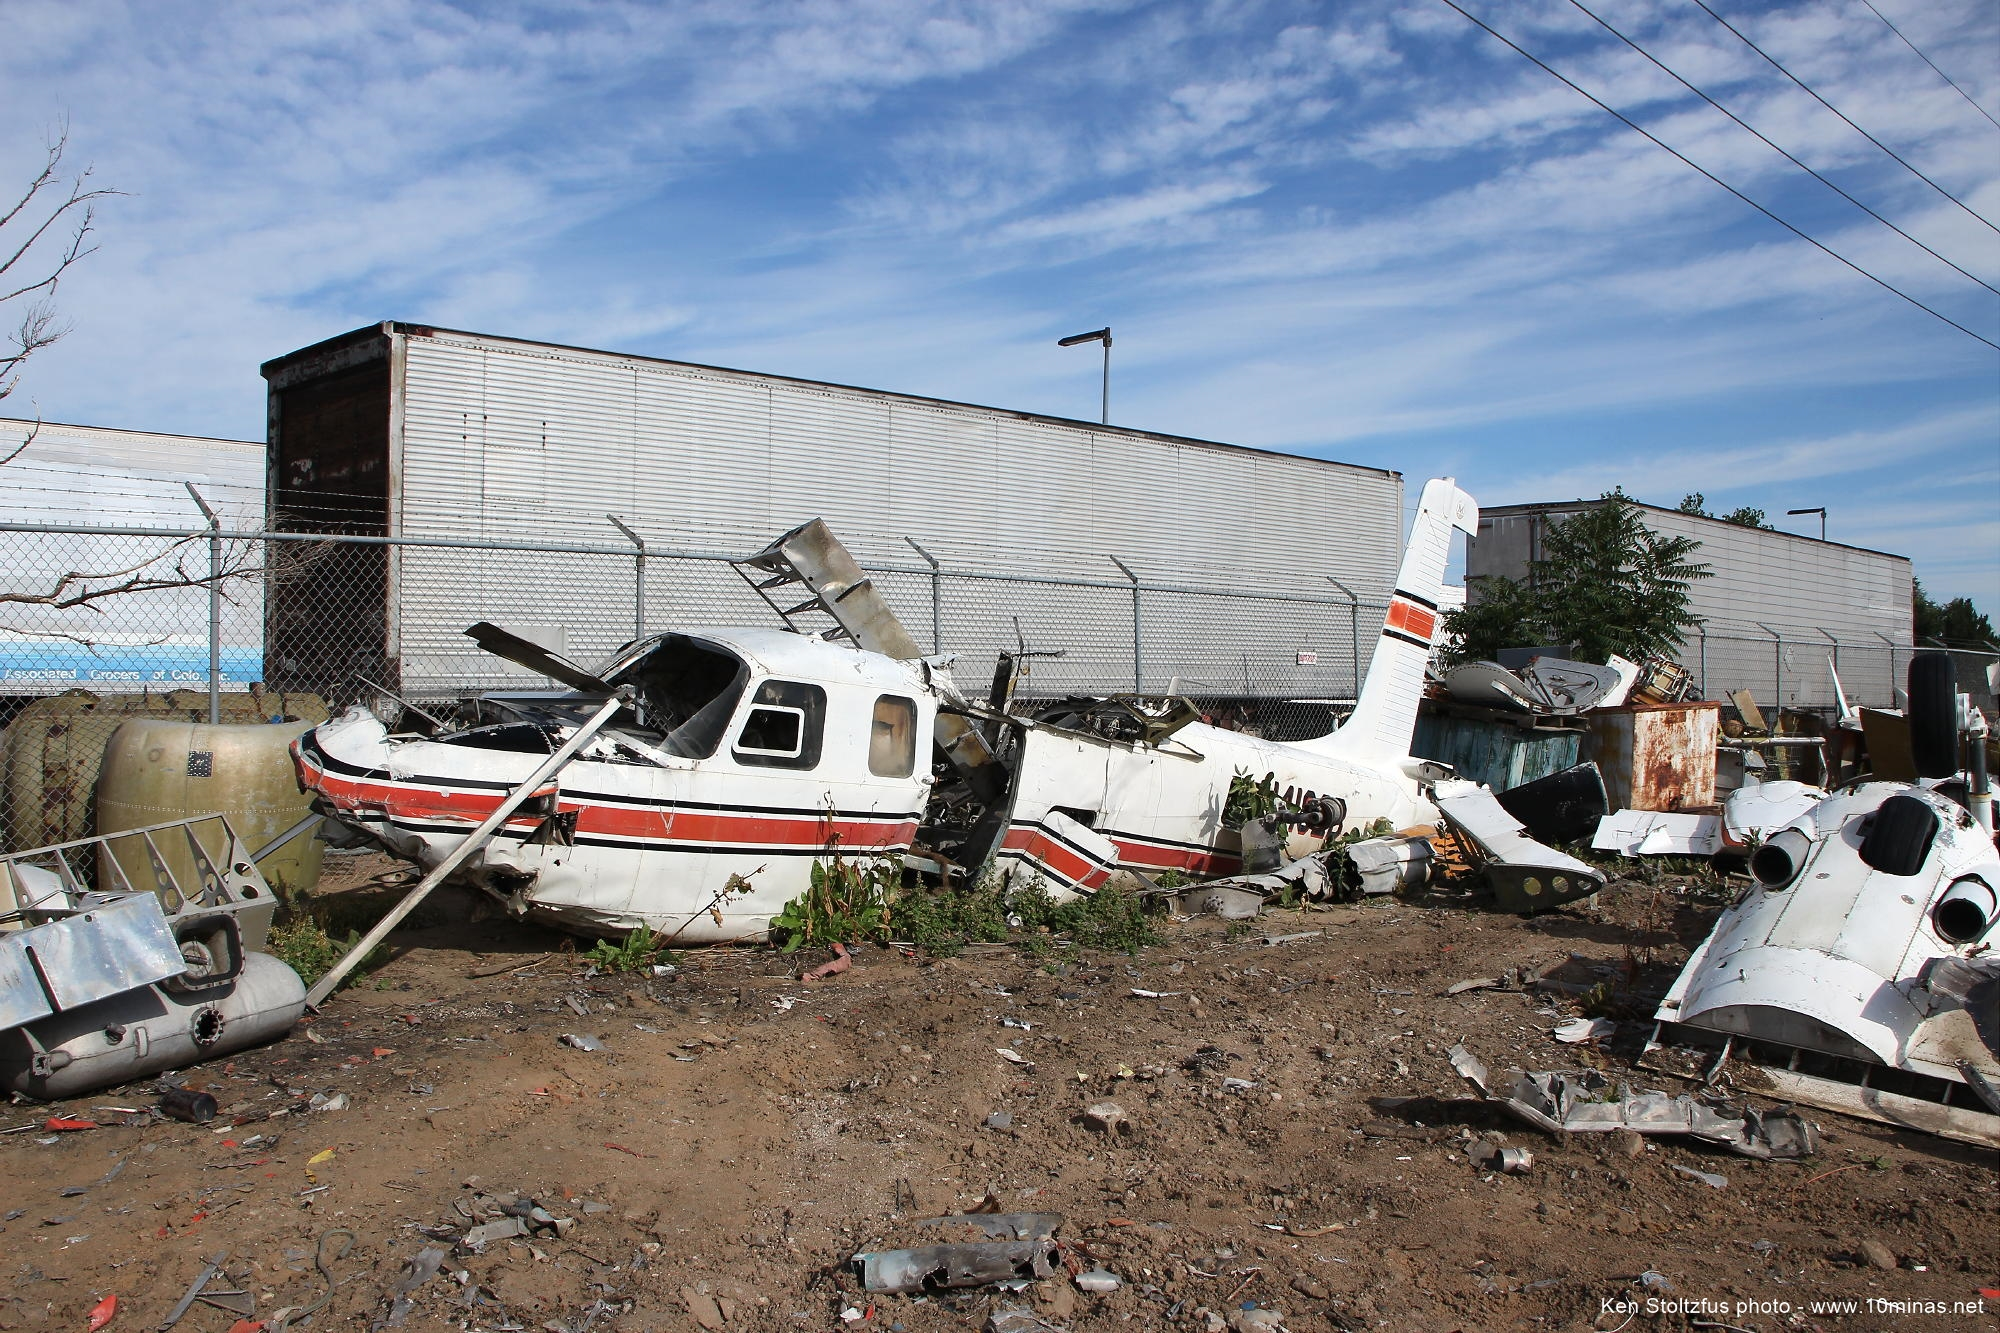 Crashed_Aero_Commander_aircraft_photo